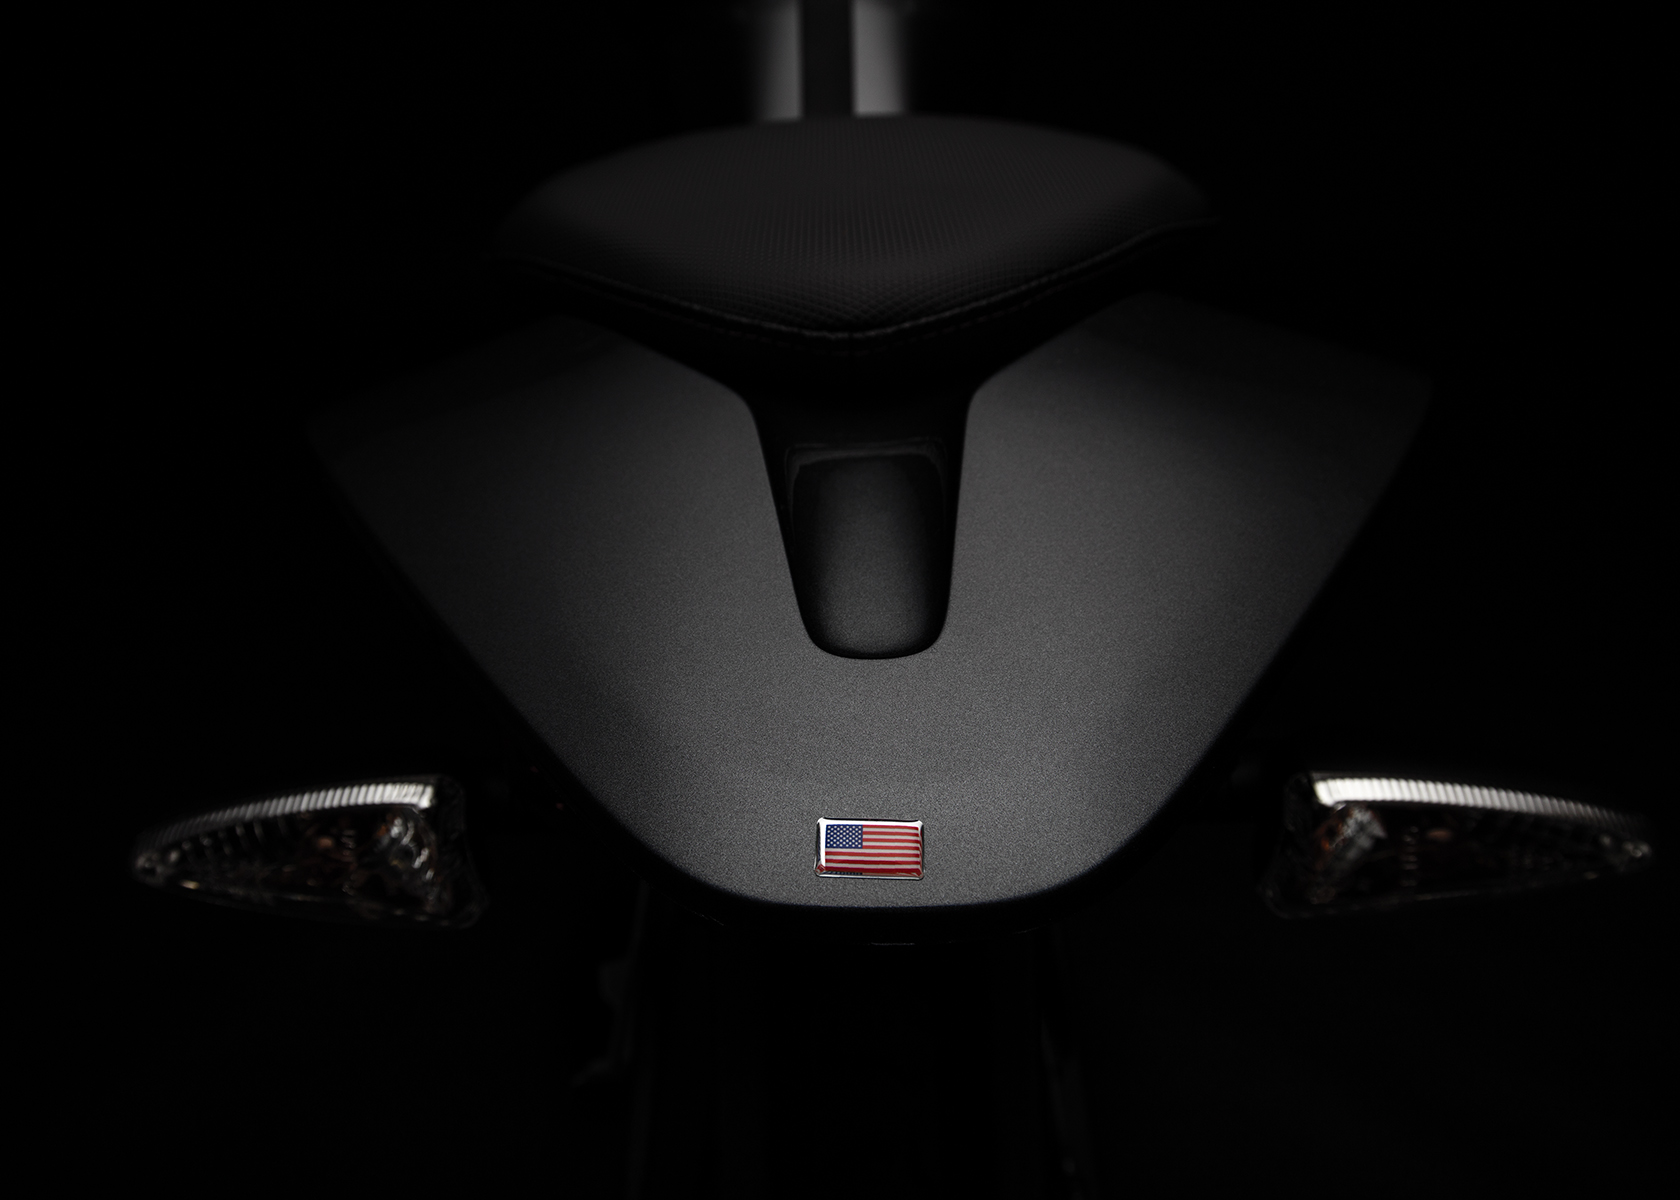 2017 Zero DSR Electric Motorcycle: Rear View